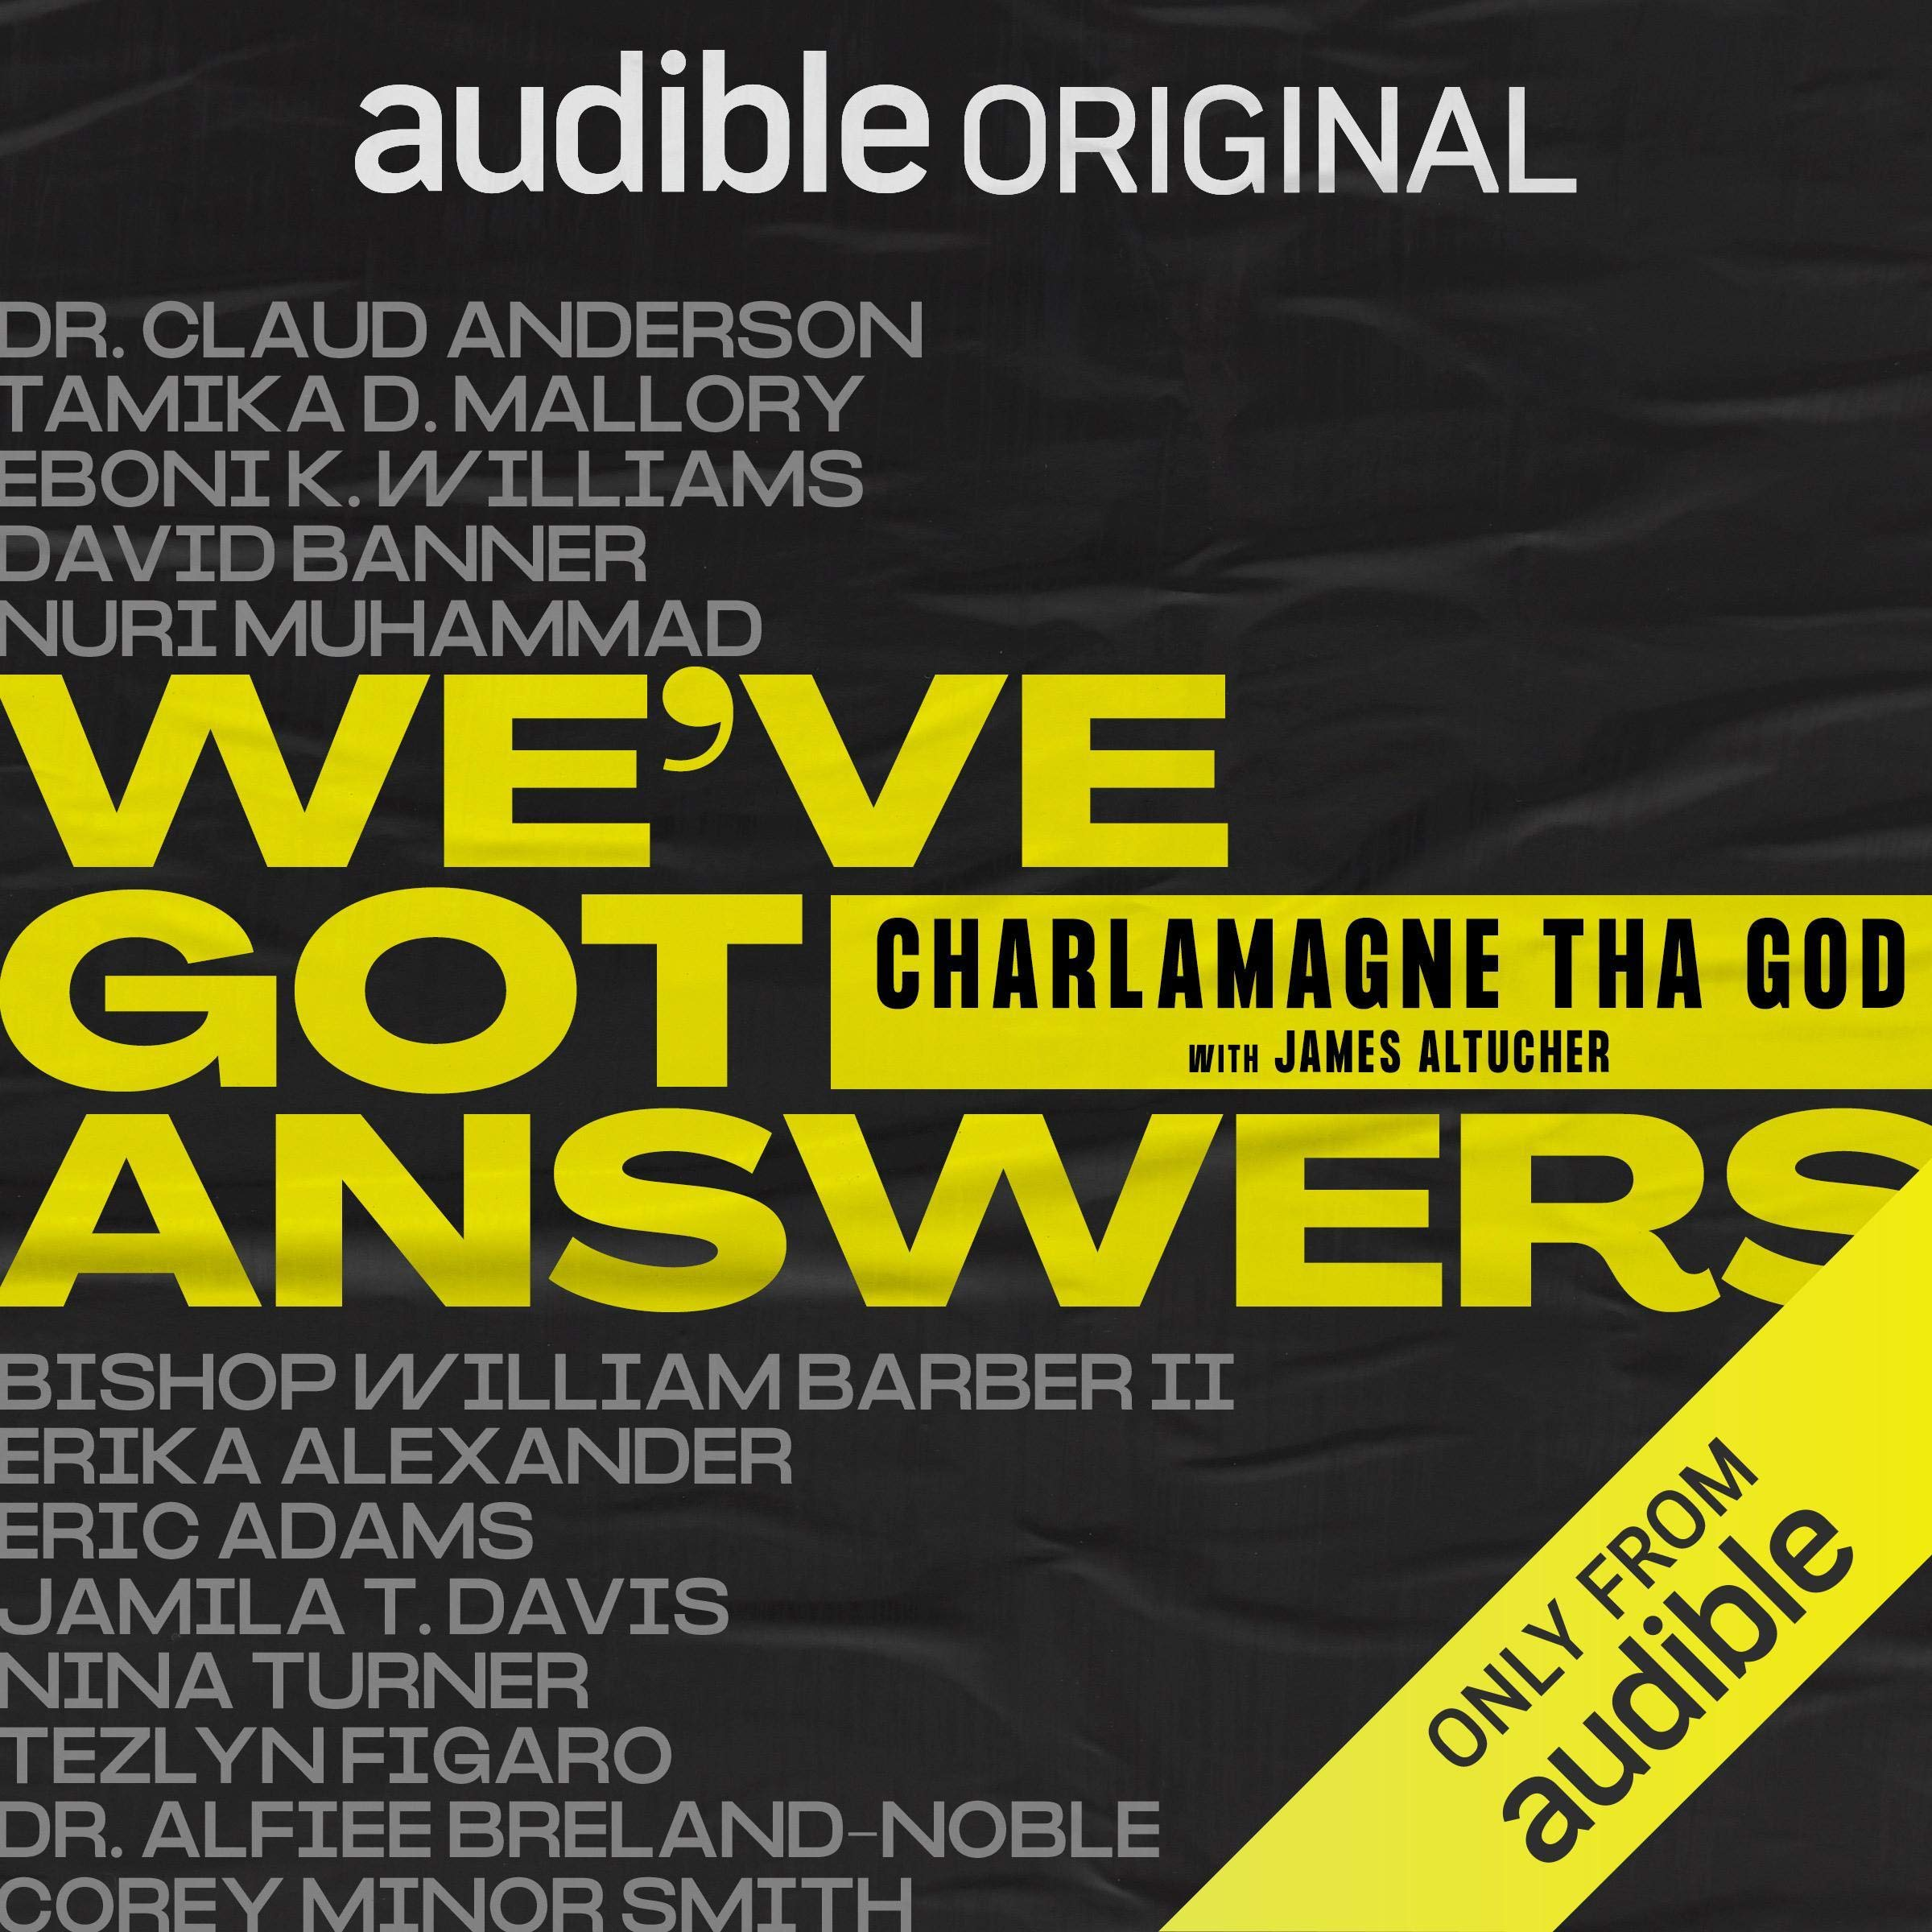 We've got answers by Charlamagne tha god